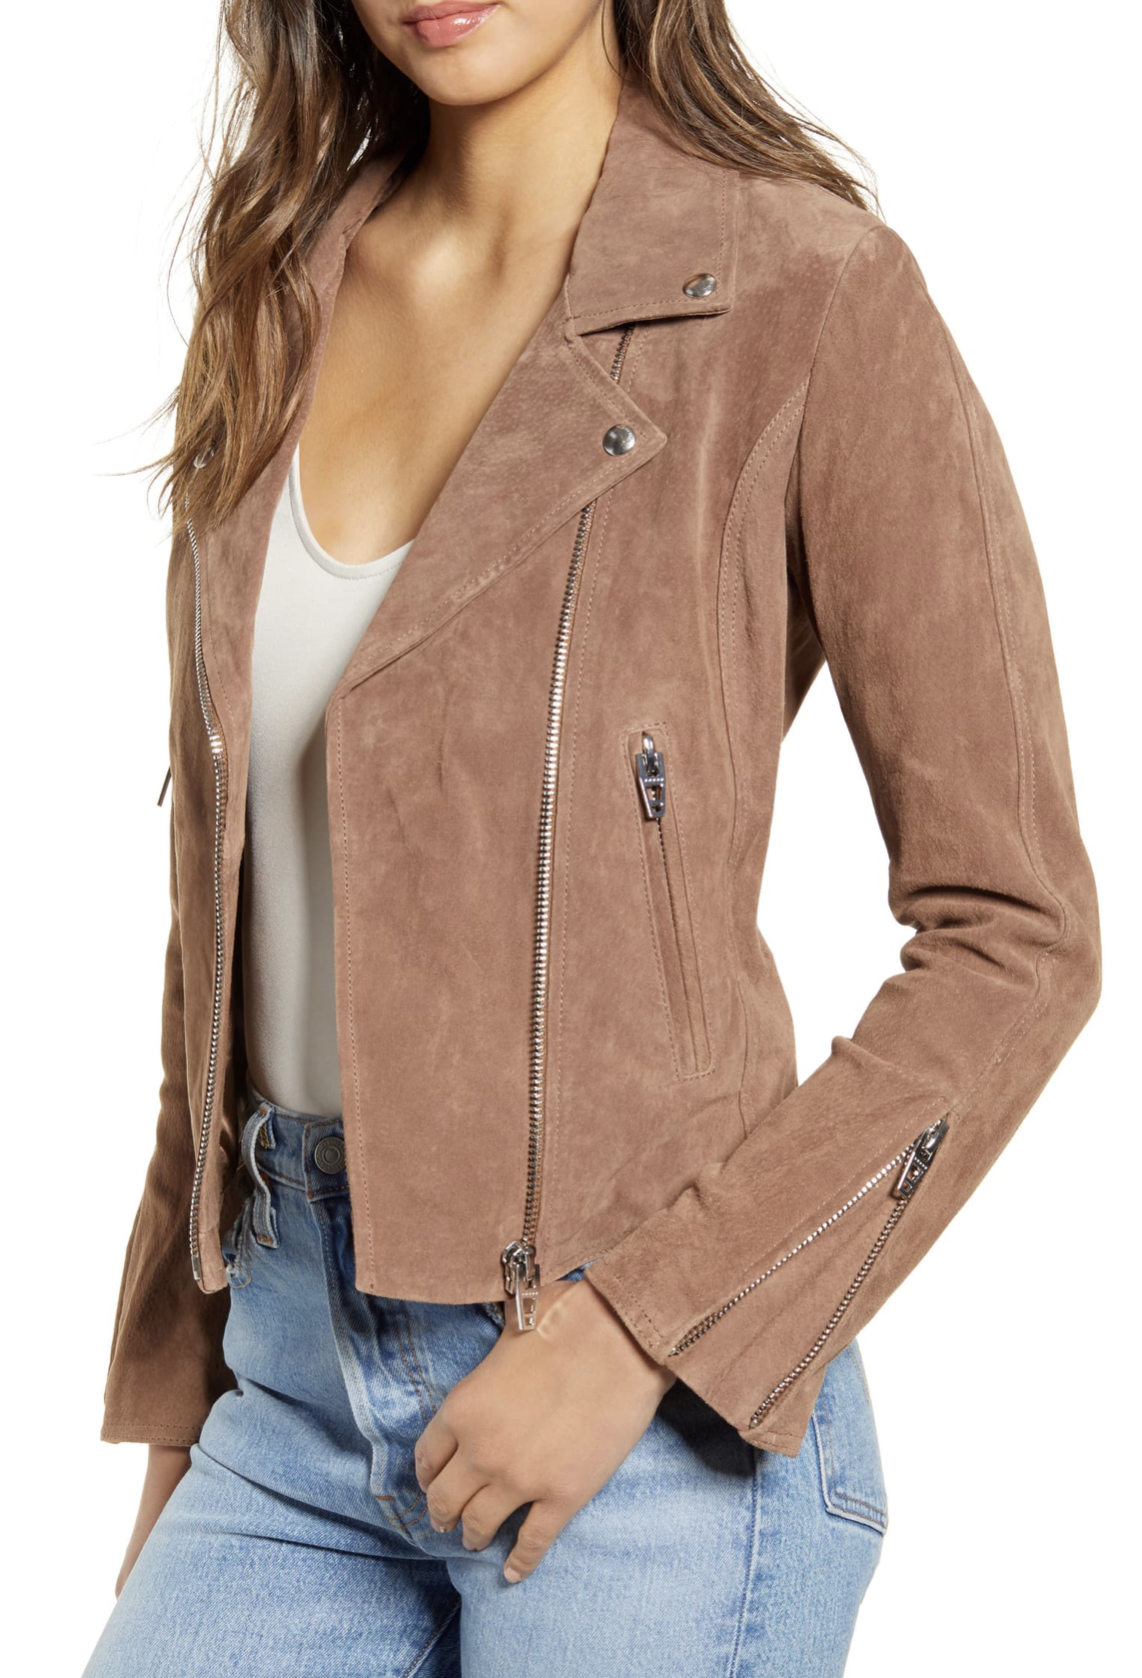 BLANKNYC Next Level Suede Moto Jacket - $125.90